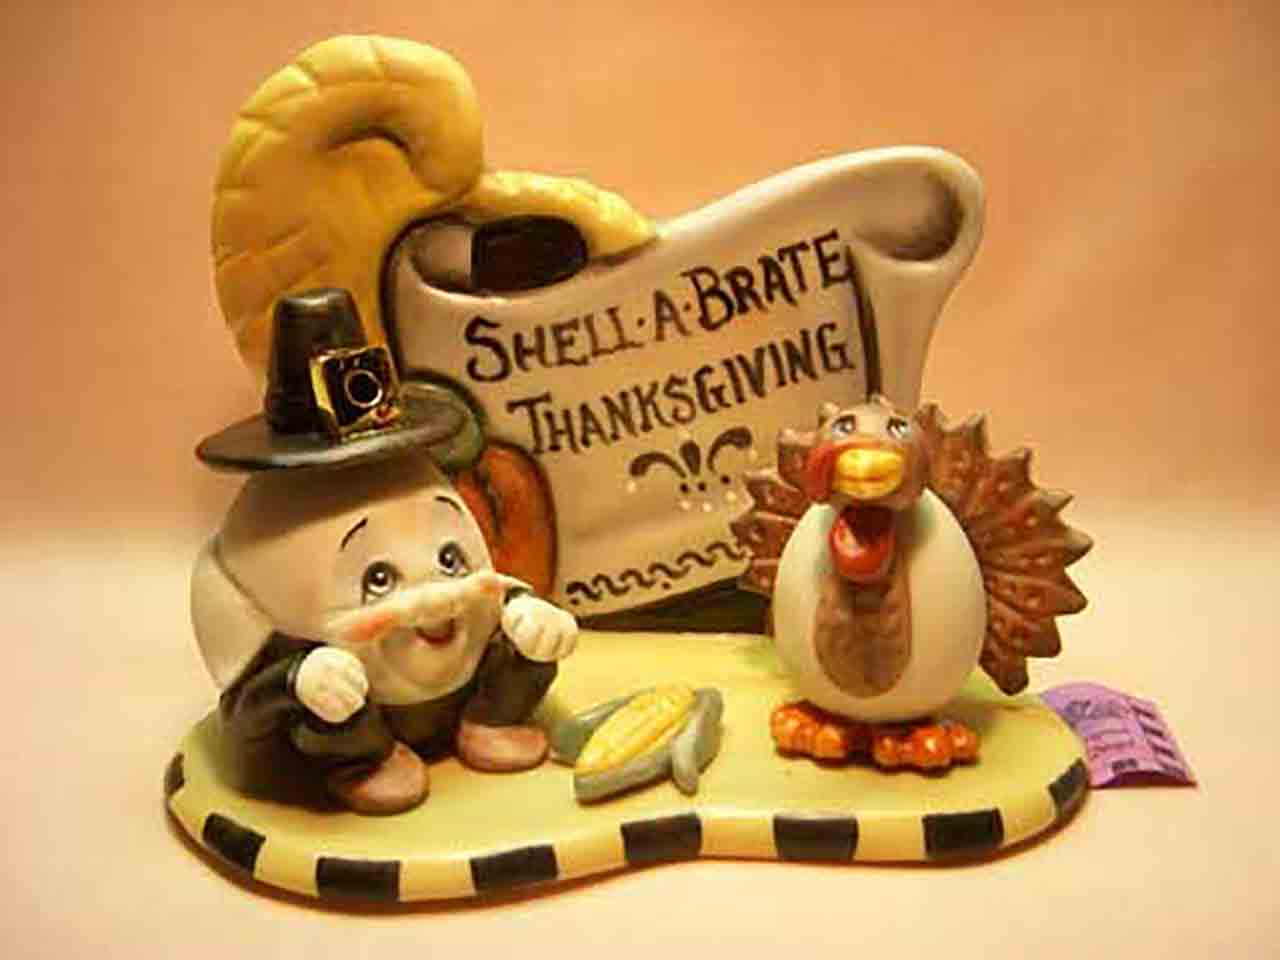 Shell-A-Brate Thanksgiving by Allyson Nagel salt and pepper shakers